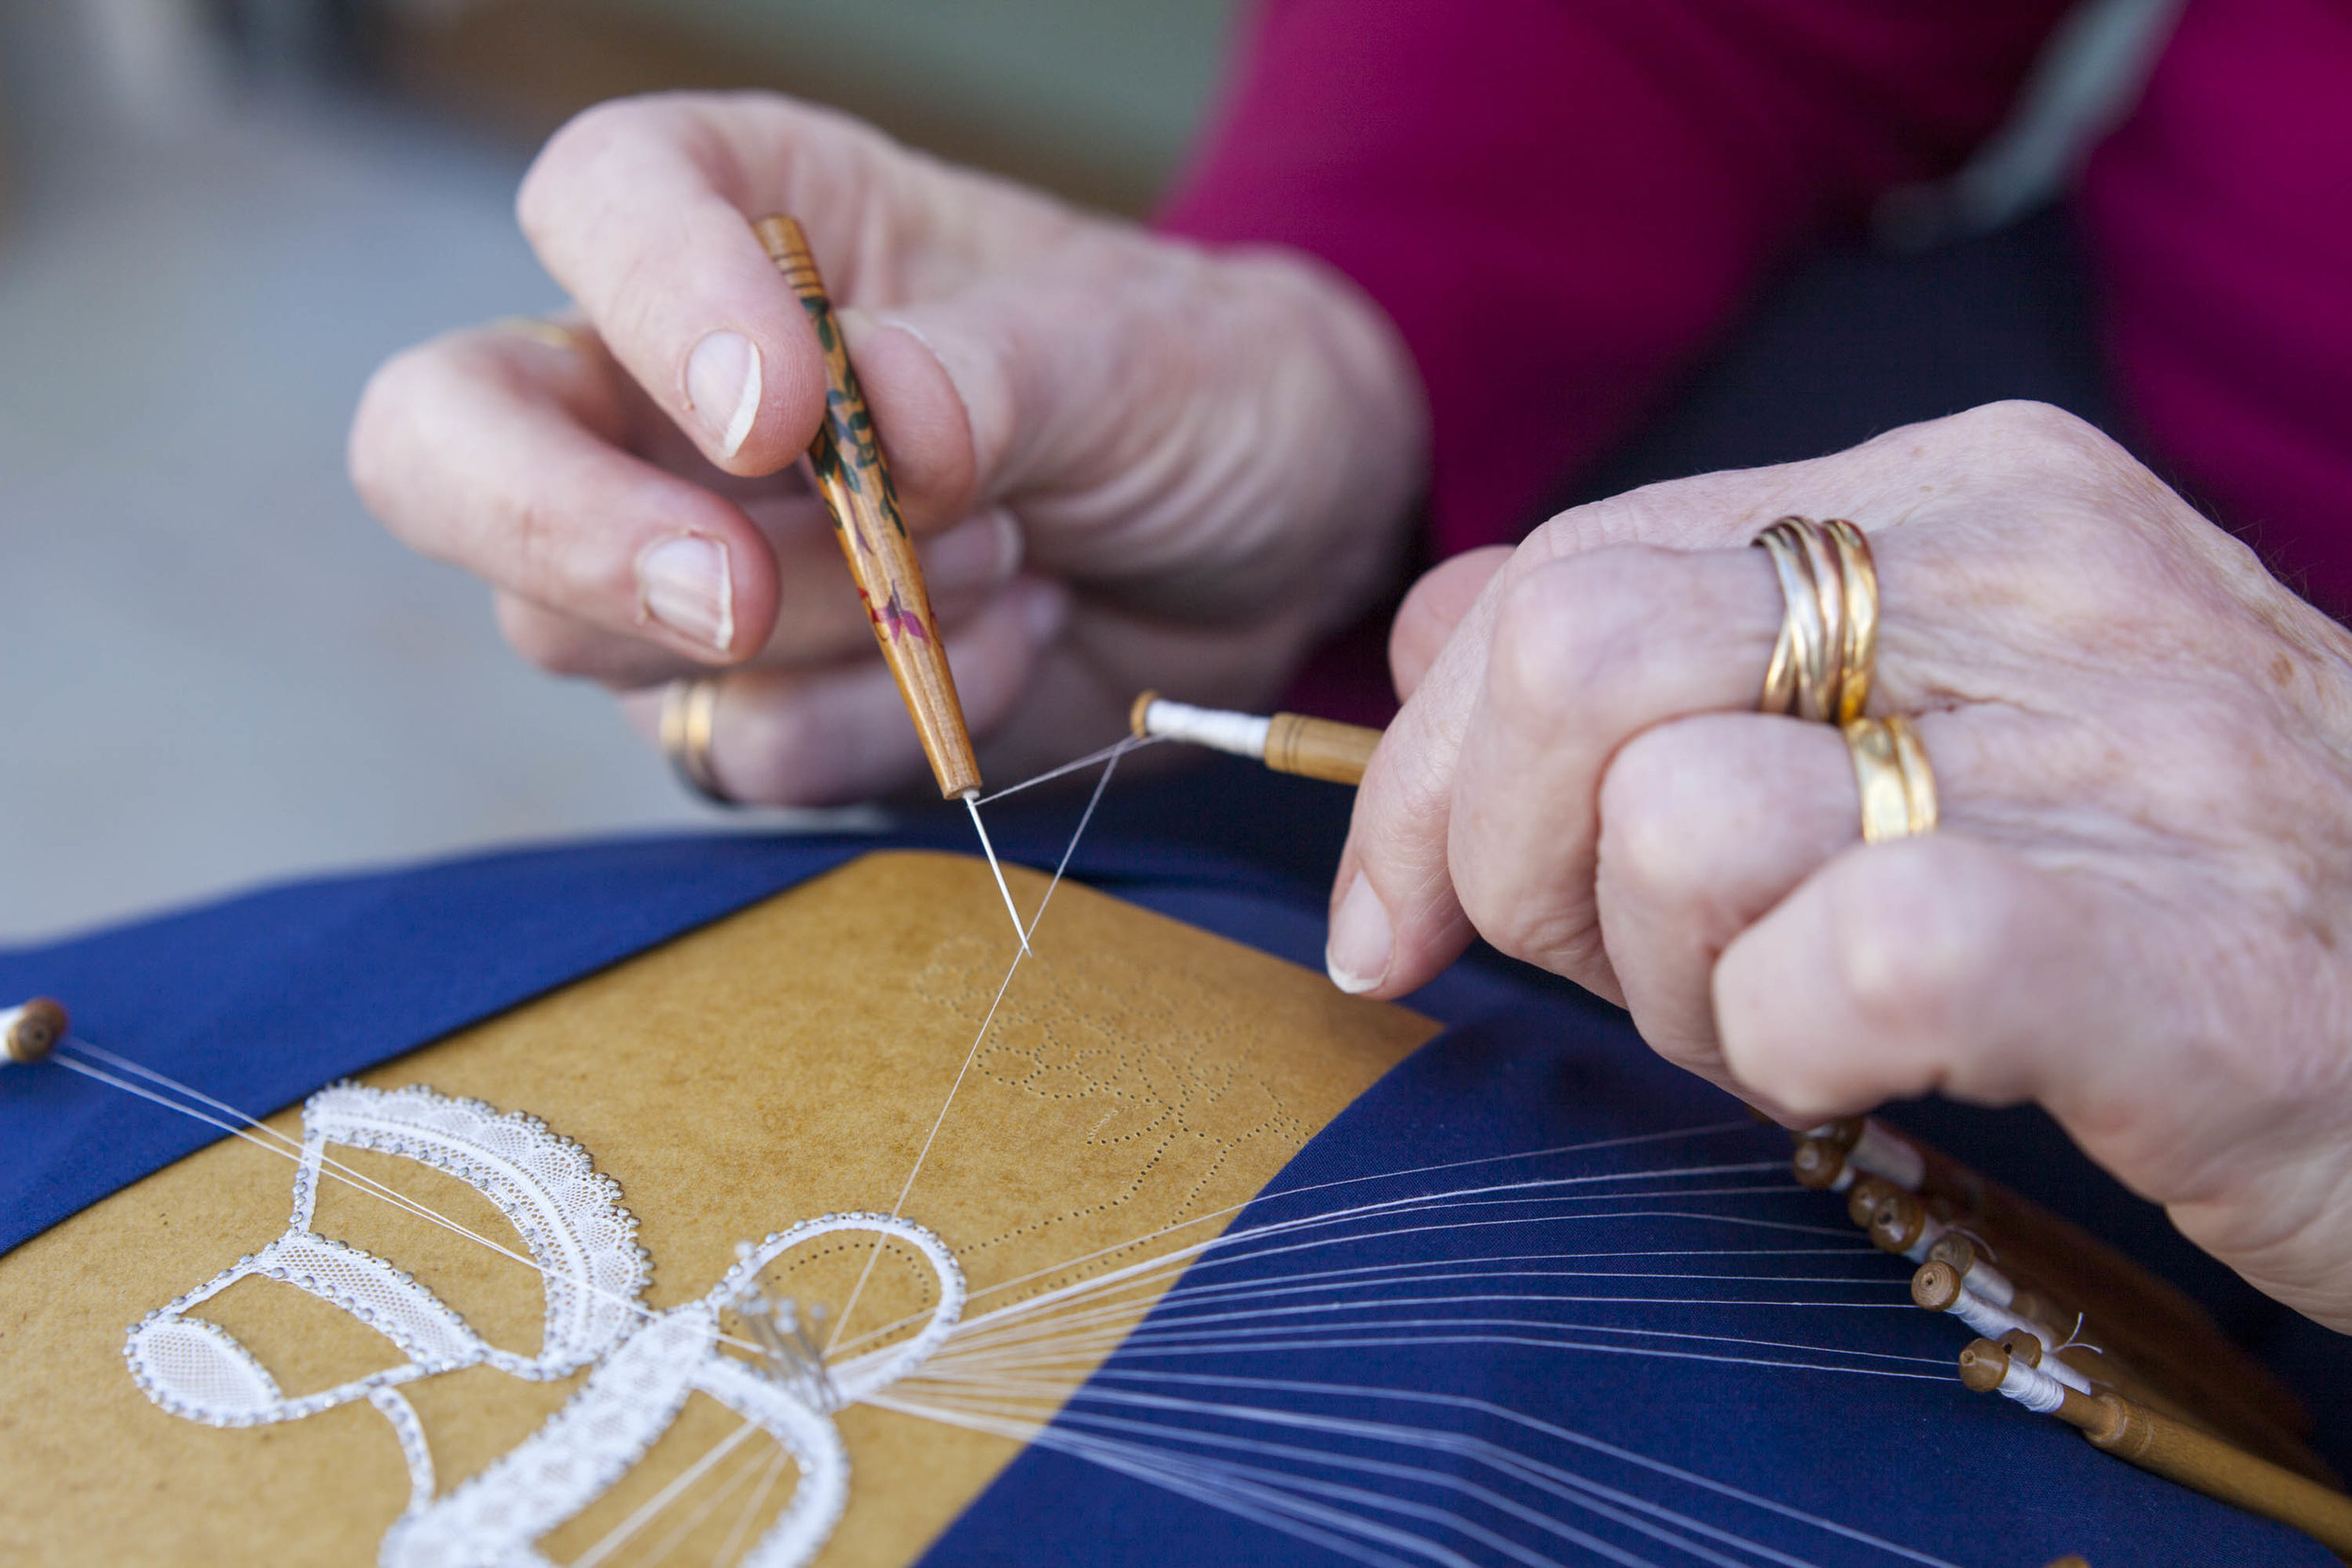 051_LaceMaker.jpg